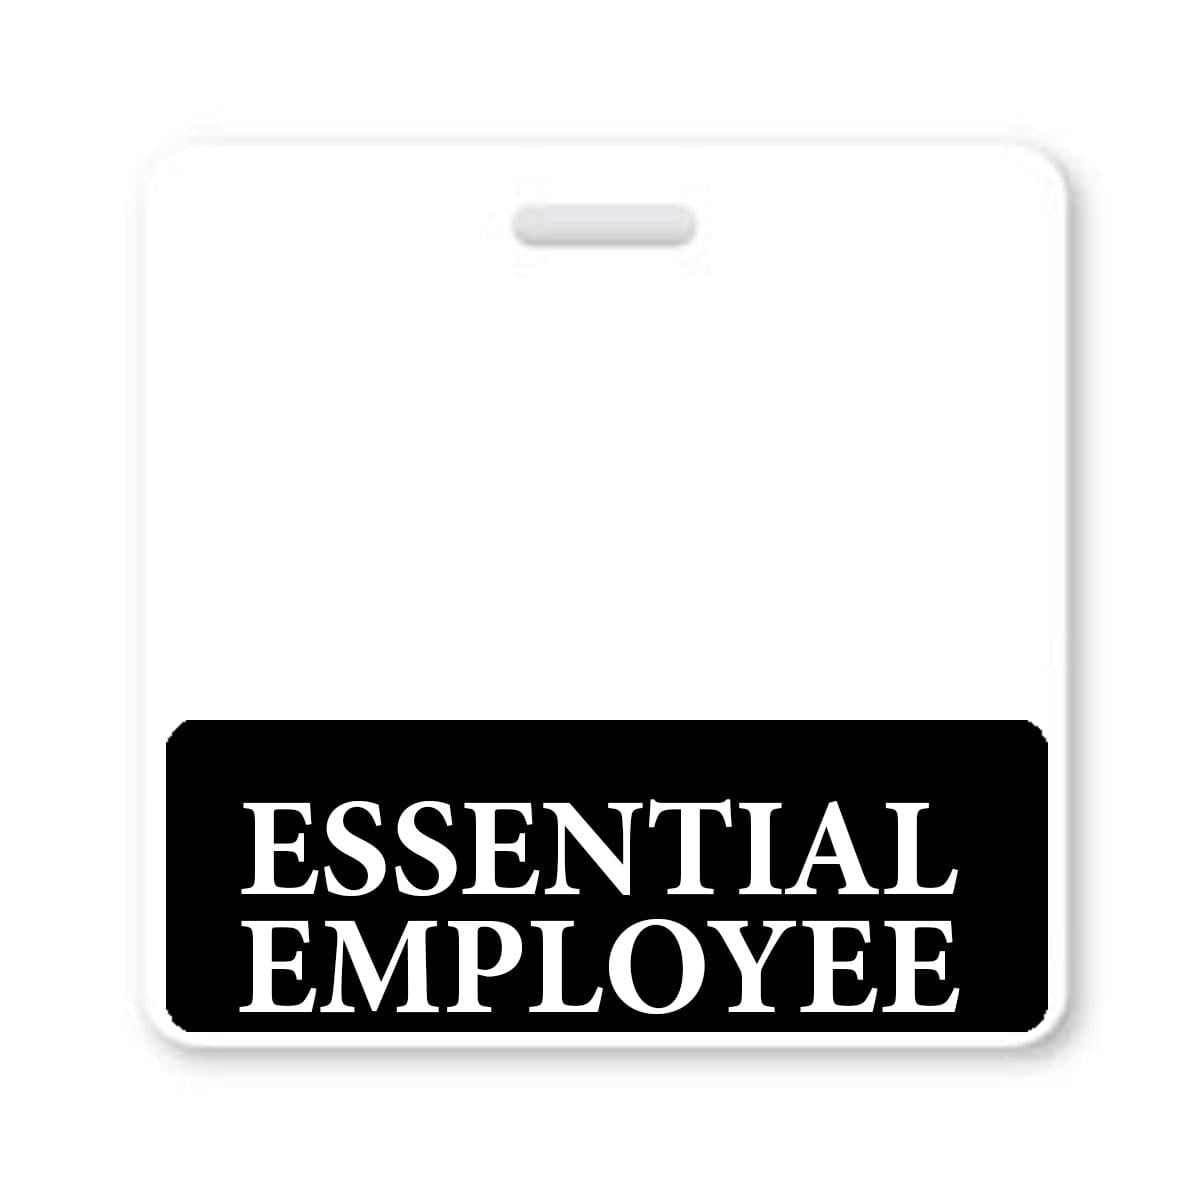 ESSENTIAL EMPLOYEE Horizontal Badge Buddy with BLACK Border